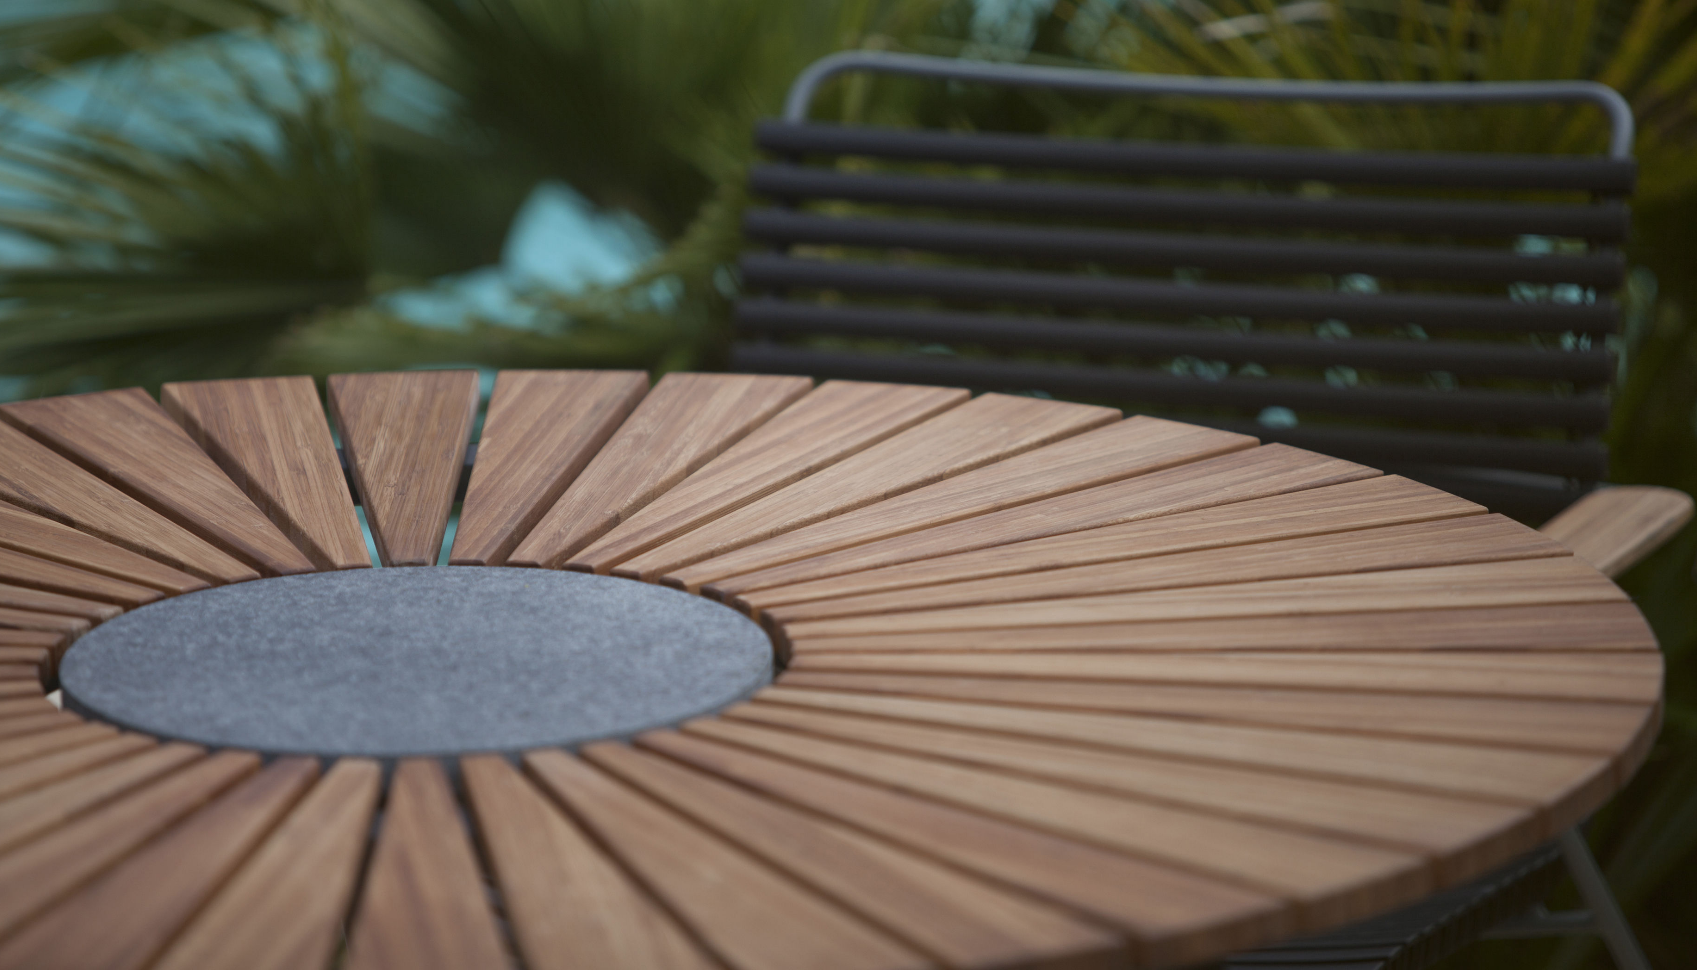 The Playnk Round Dining Table from Ledge Lounger and HOUE